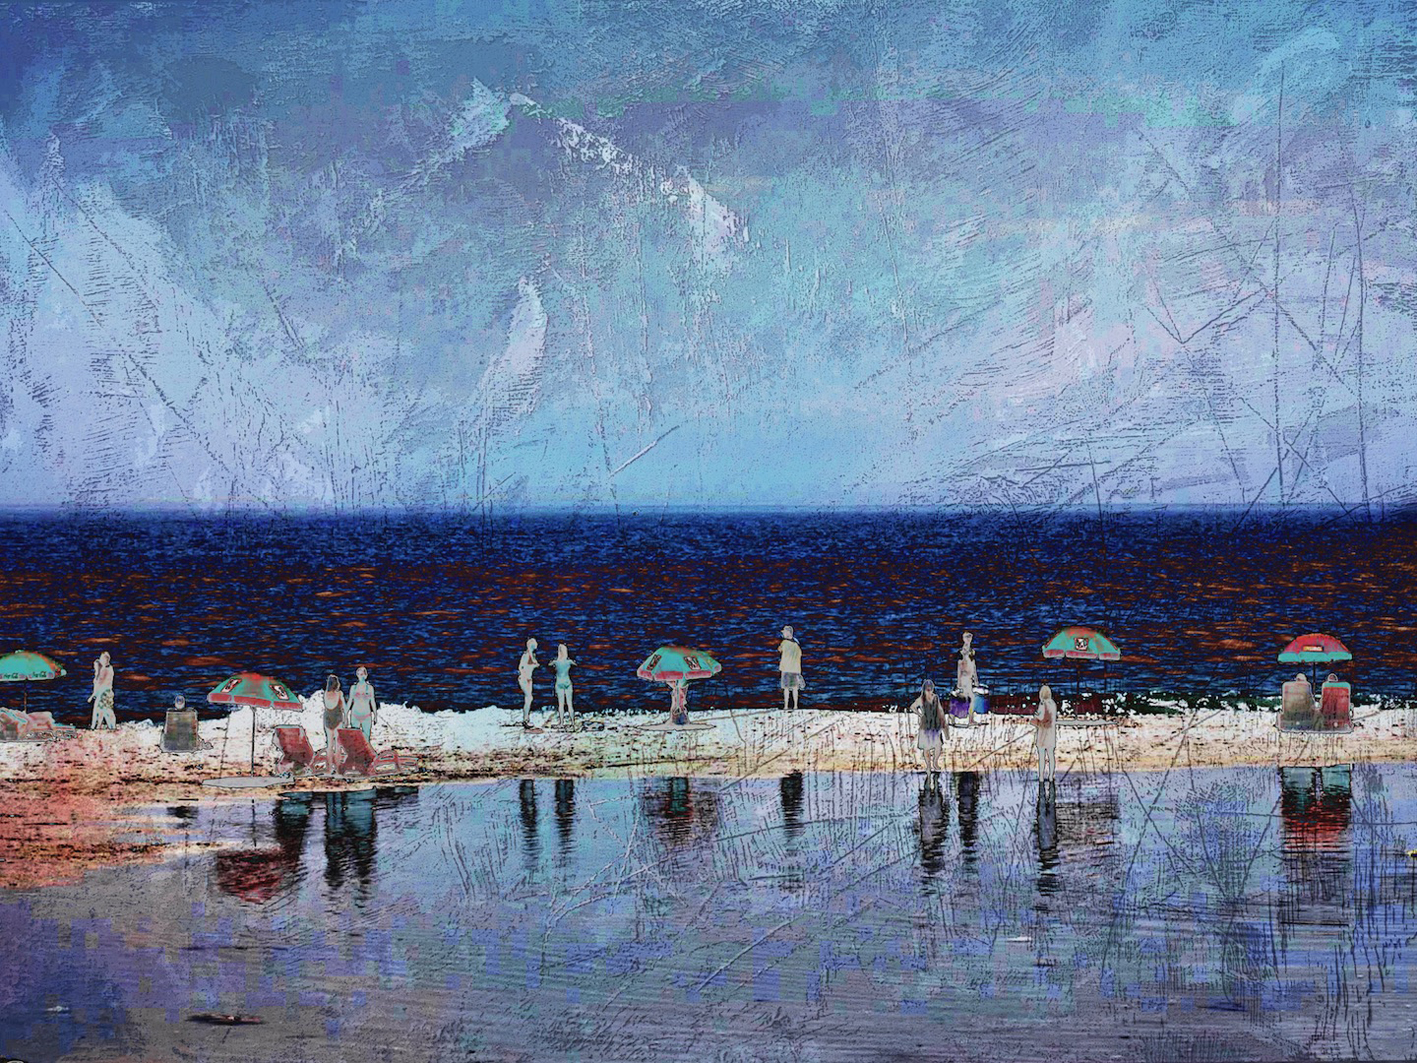 The Studio Art Gallery - Edge of Blue - Summertime by Robyn Schoon - Digital Mixed Media